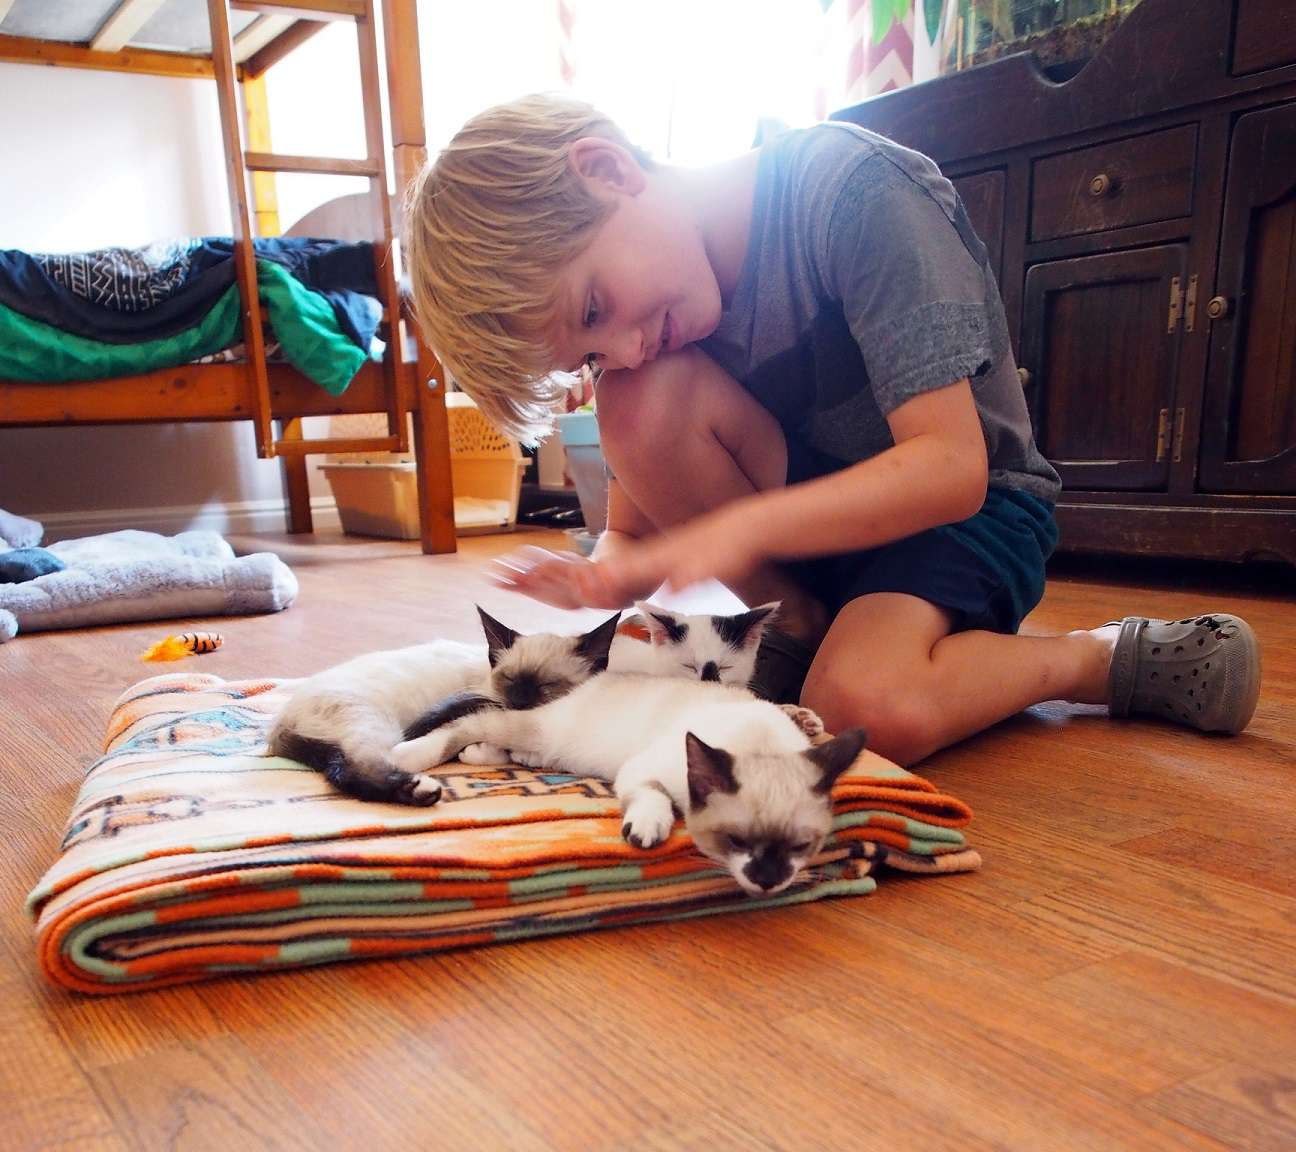 Boy plays with kittens.